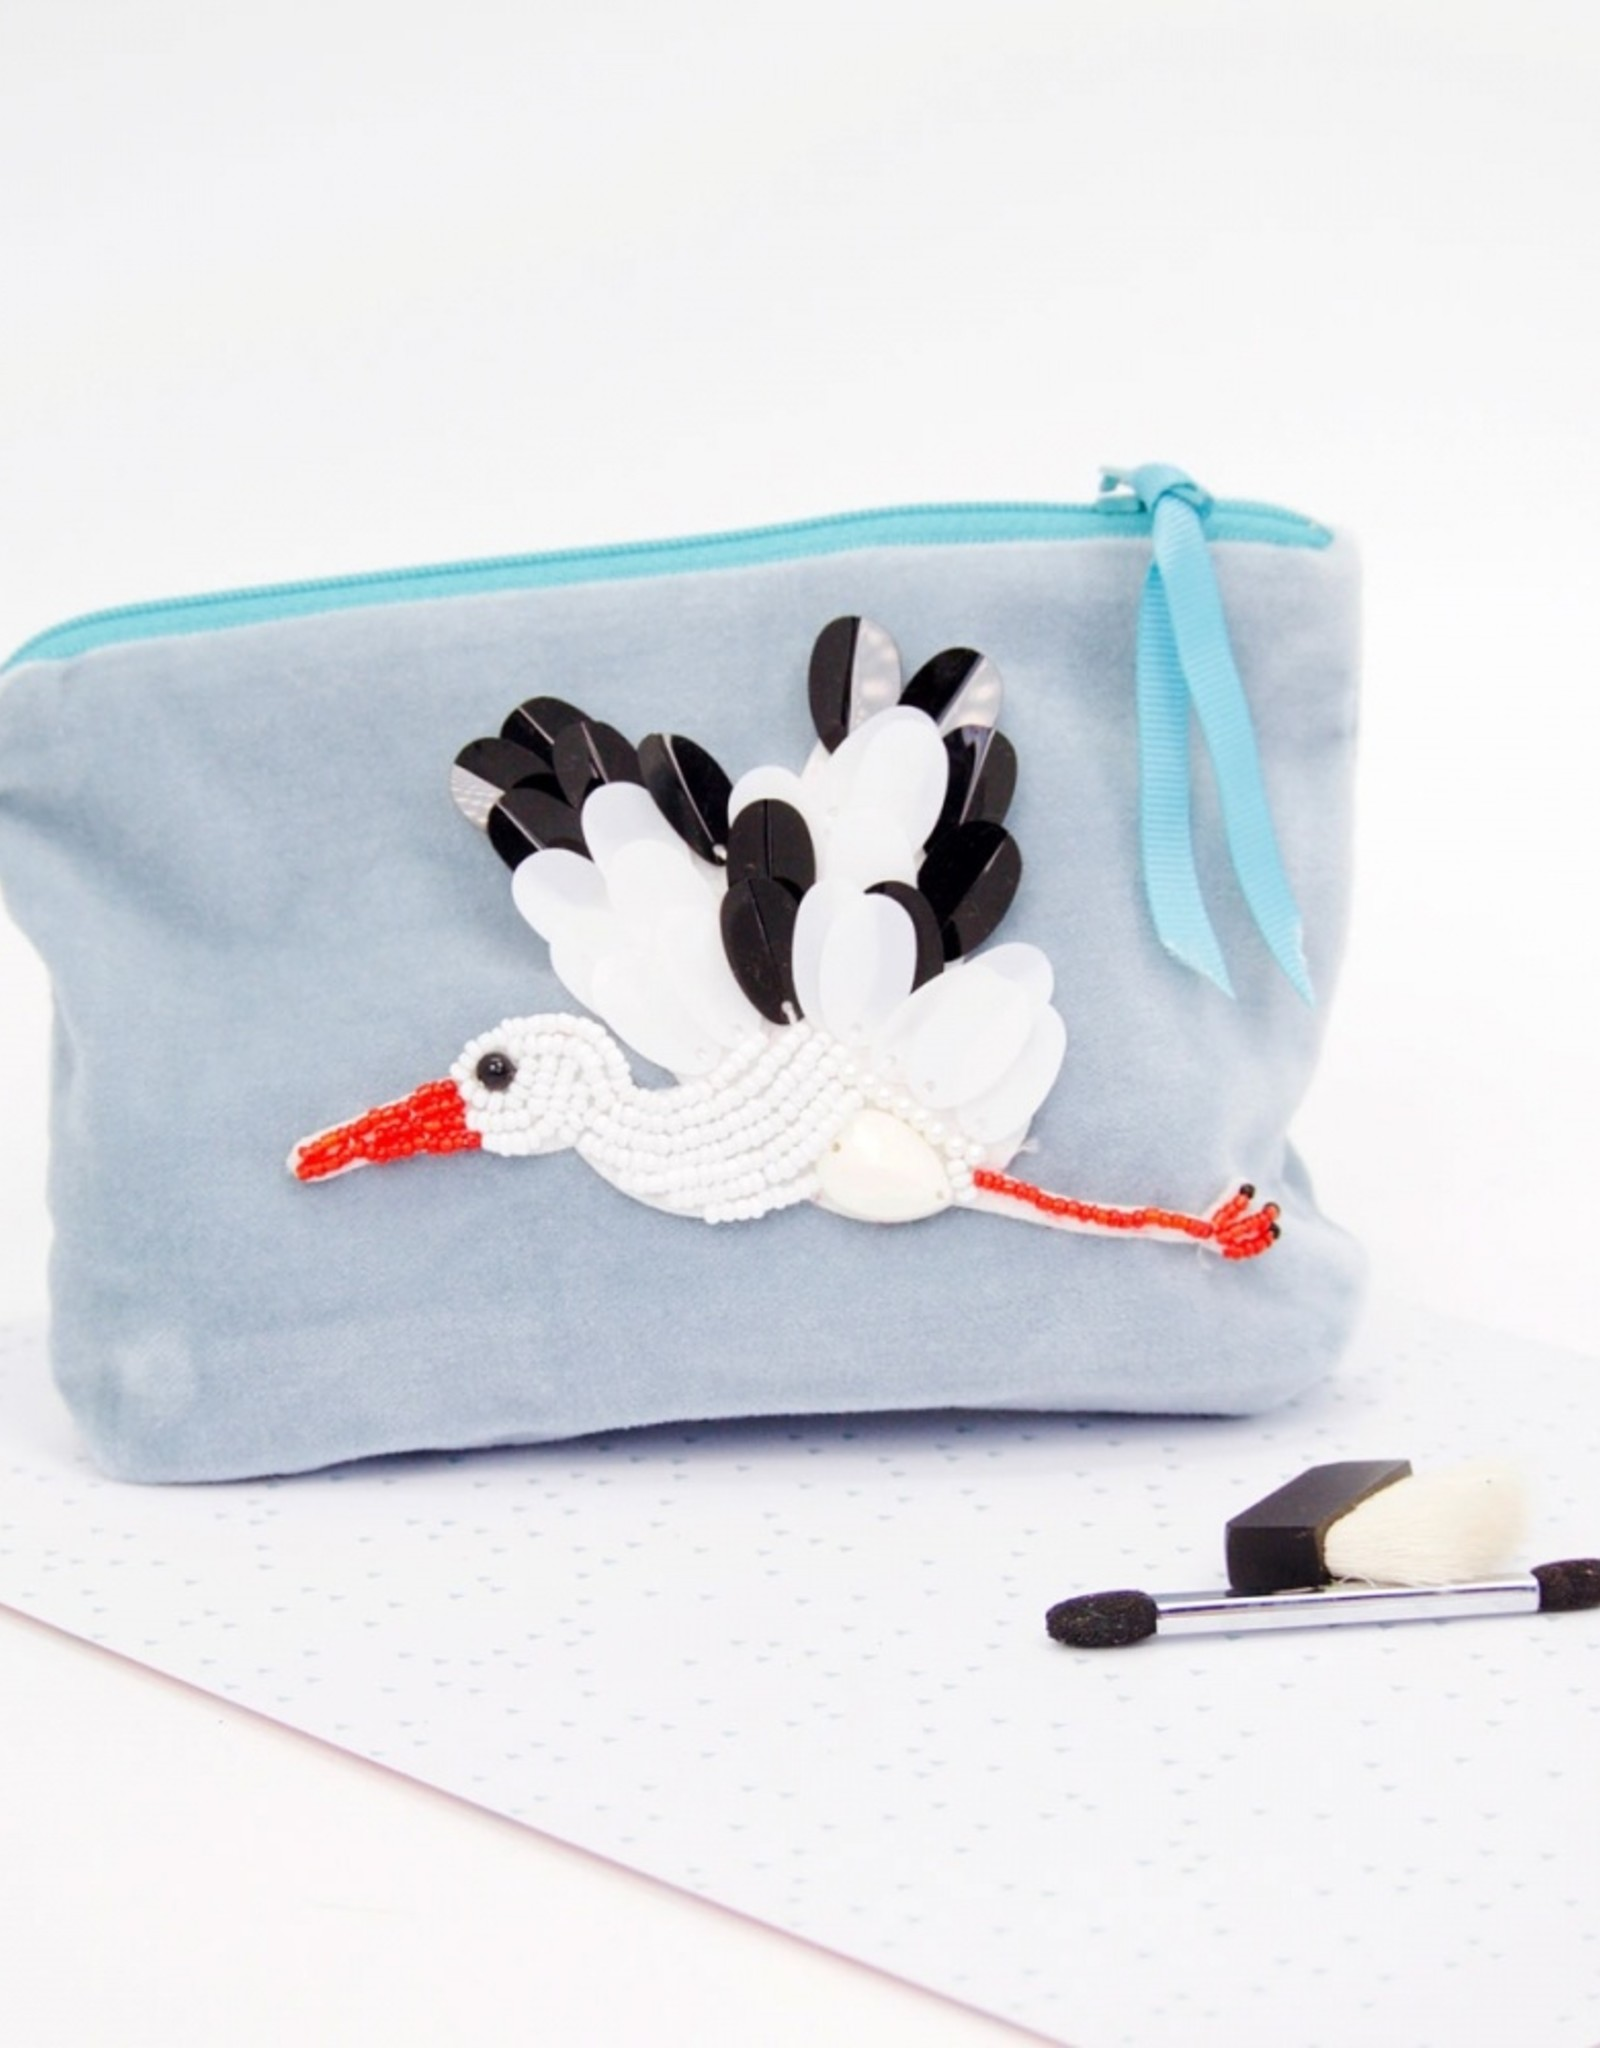 Sequined stork bird velvet pouch